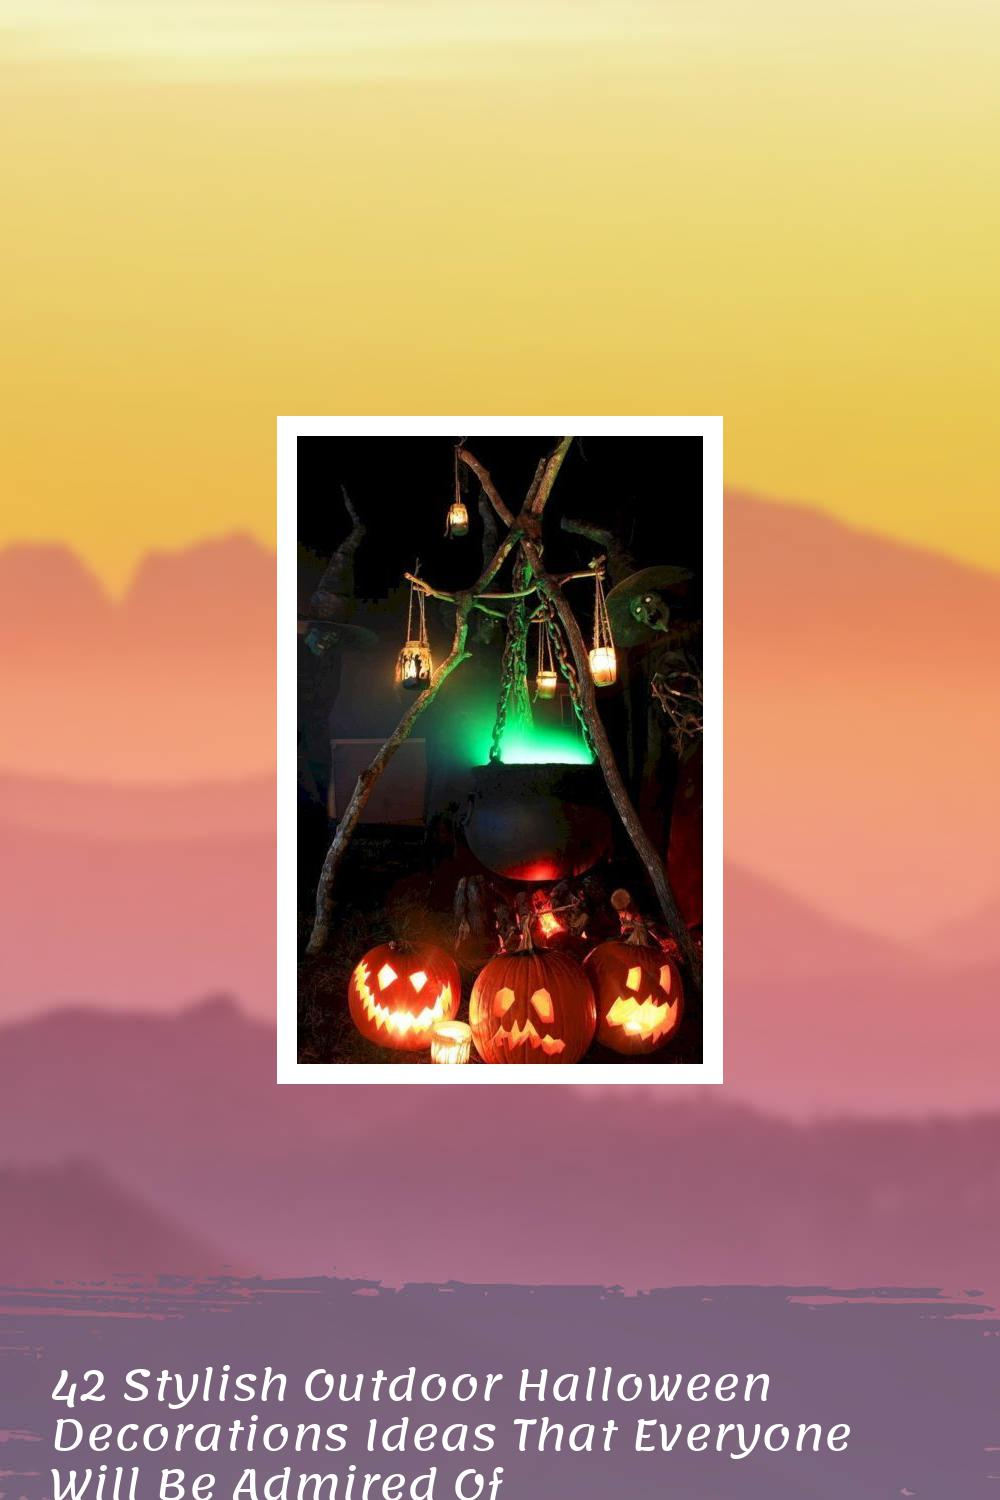 42 Stylish Outdoor Halloween Decorations Ideas That Everyone Will Be Admired Of 1